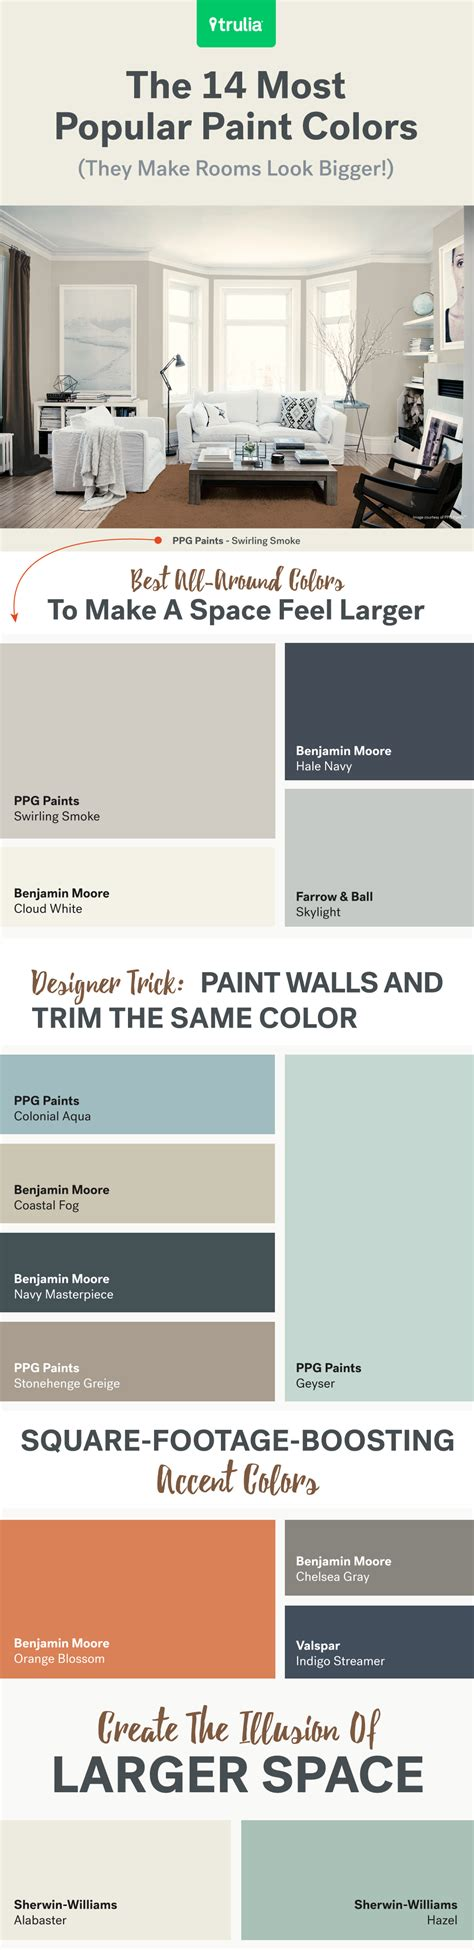 what paint colors make rooms look bigger 14 popular paint colors for small rooms at home